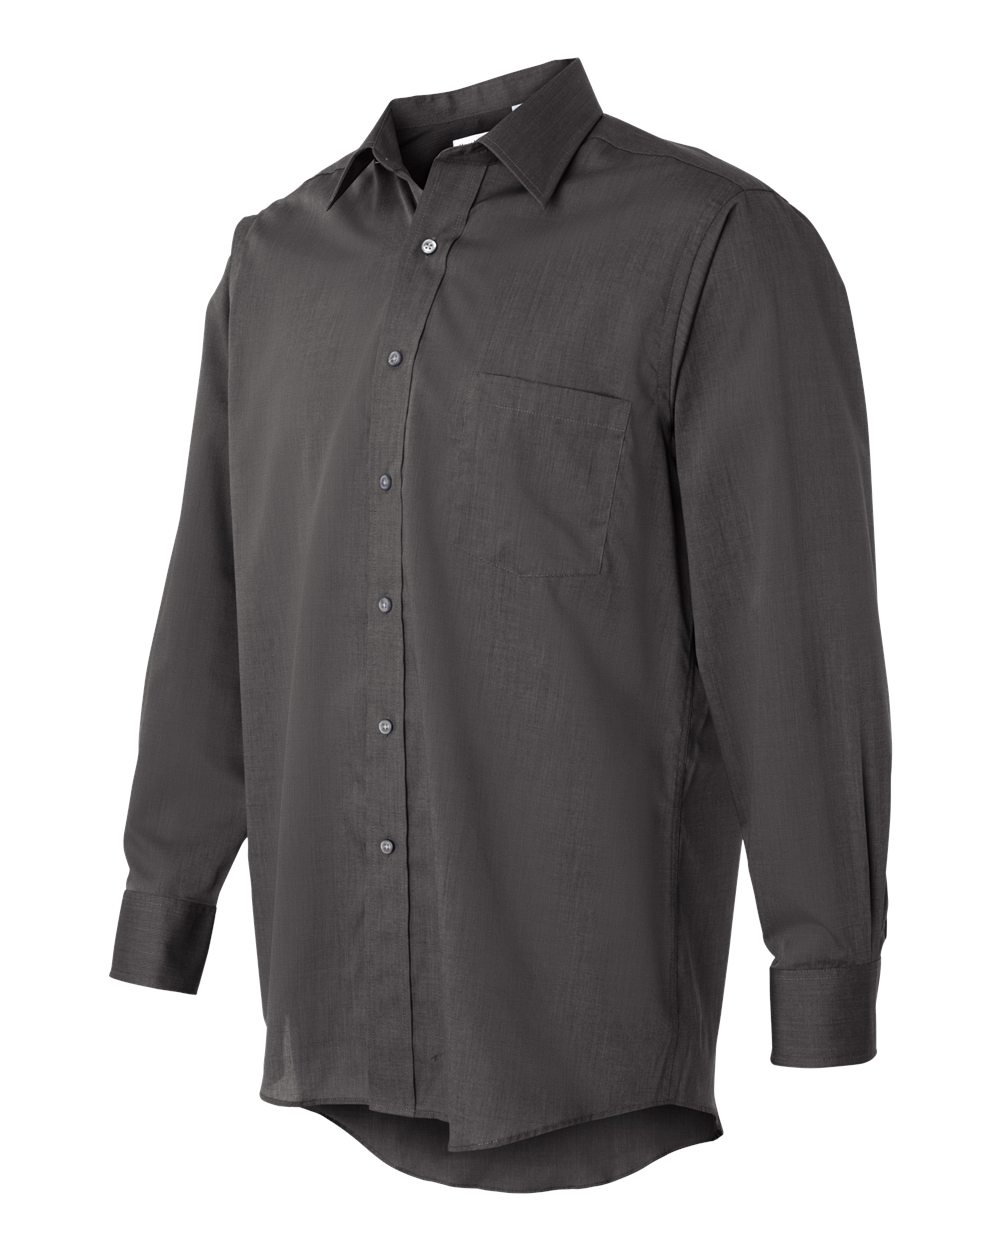 Van Heusen 13V0193 - End-on-End Shirt